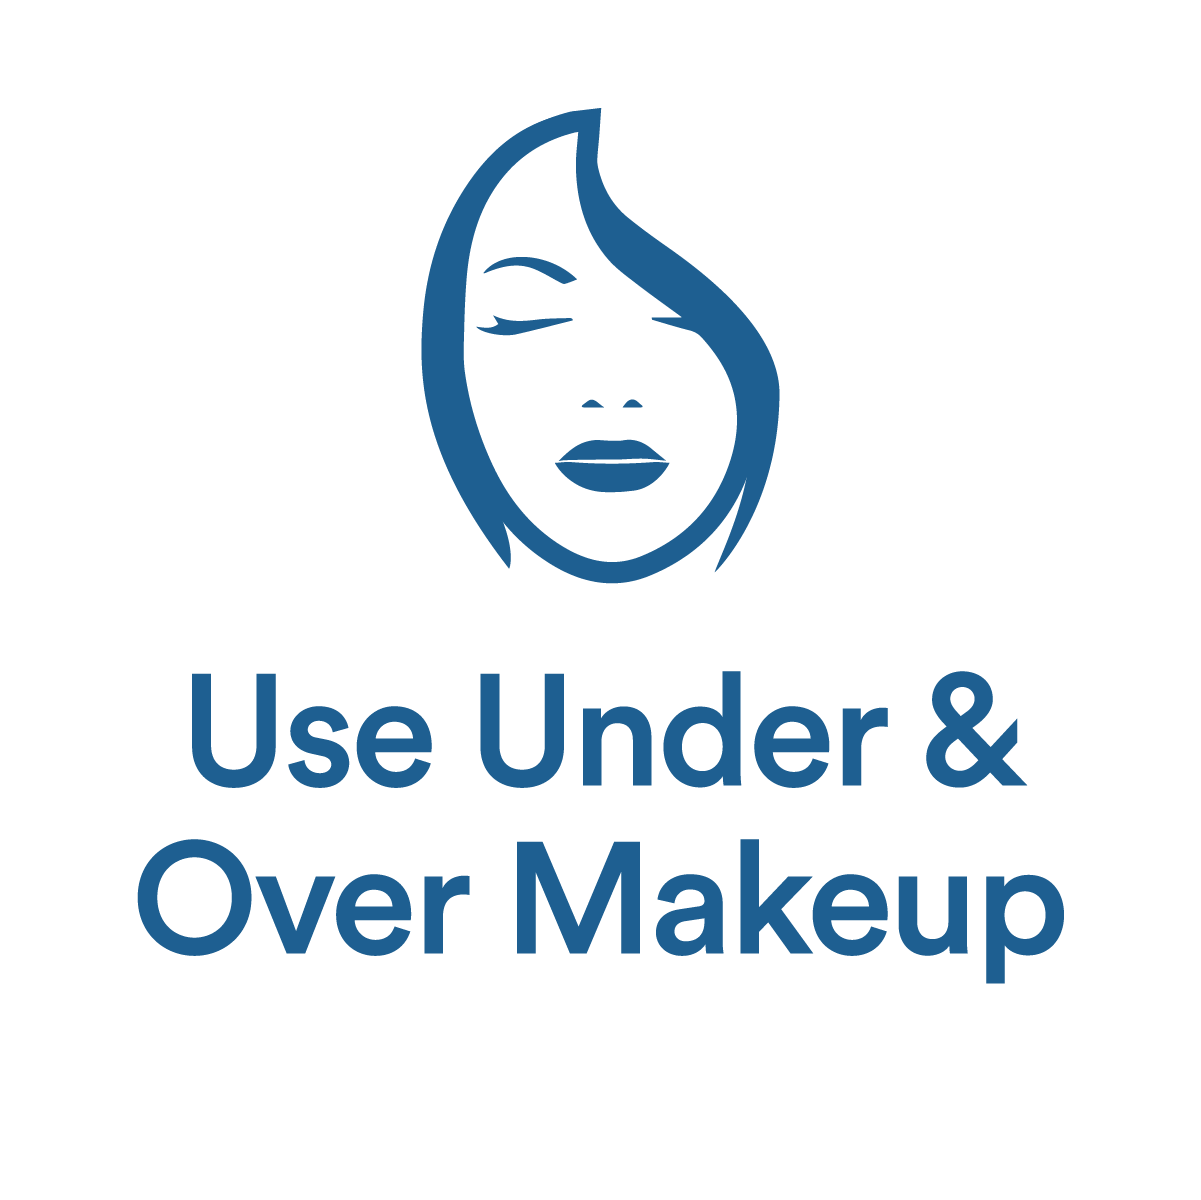 Use under and over makeup